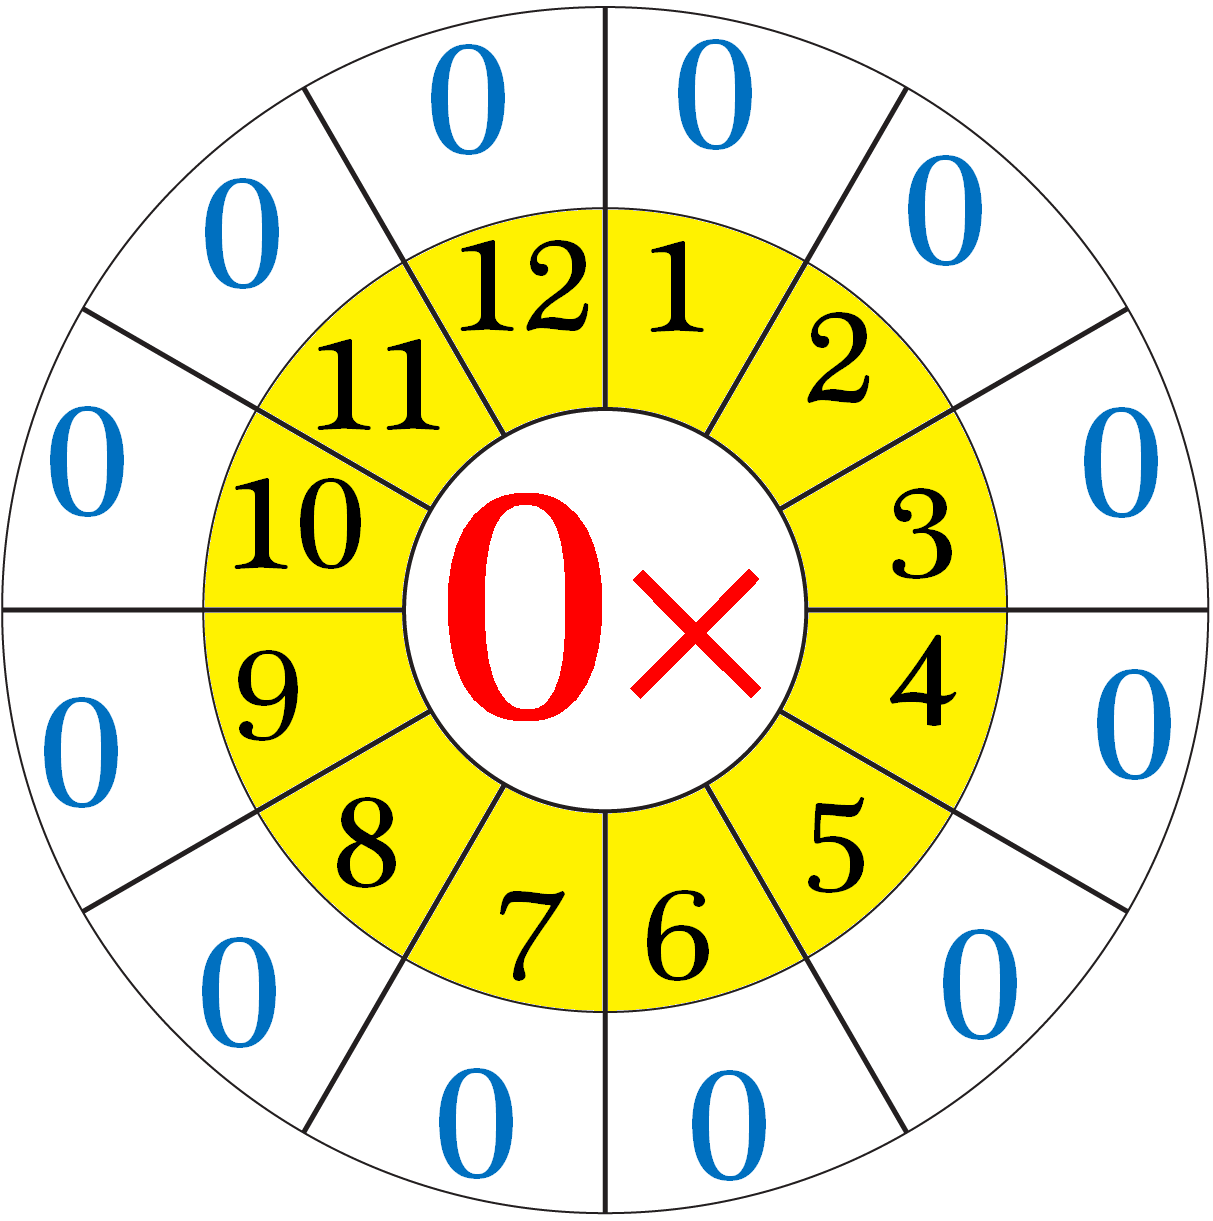 Multiplication Table Of 0 | Read And Write The Table Of 0